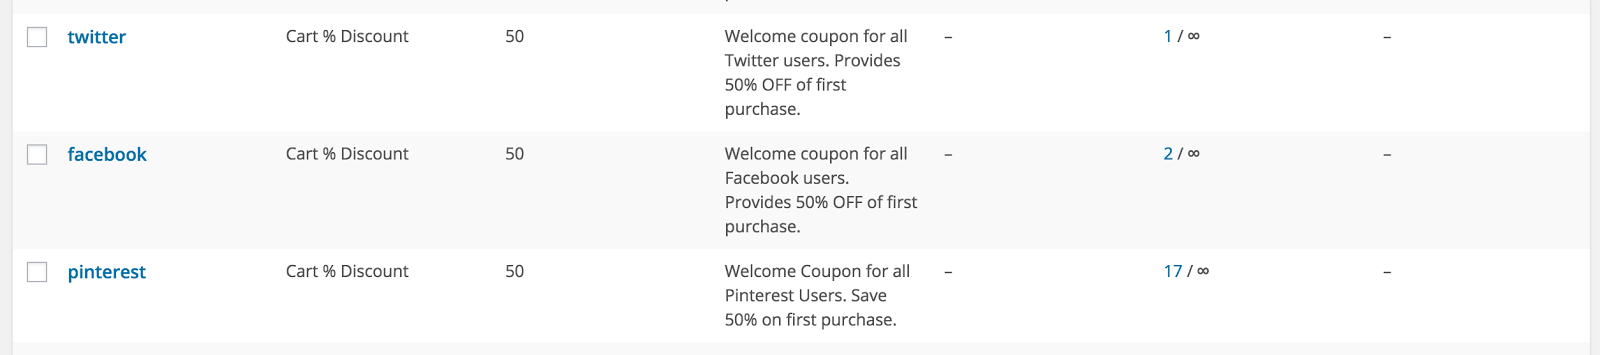 Creating coupons to match the campaigns and help with tracking/analytics